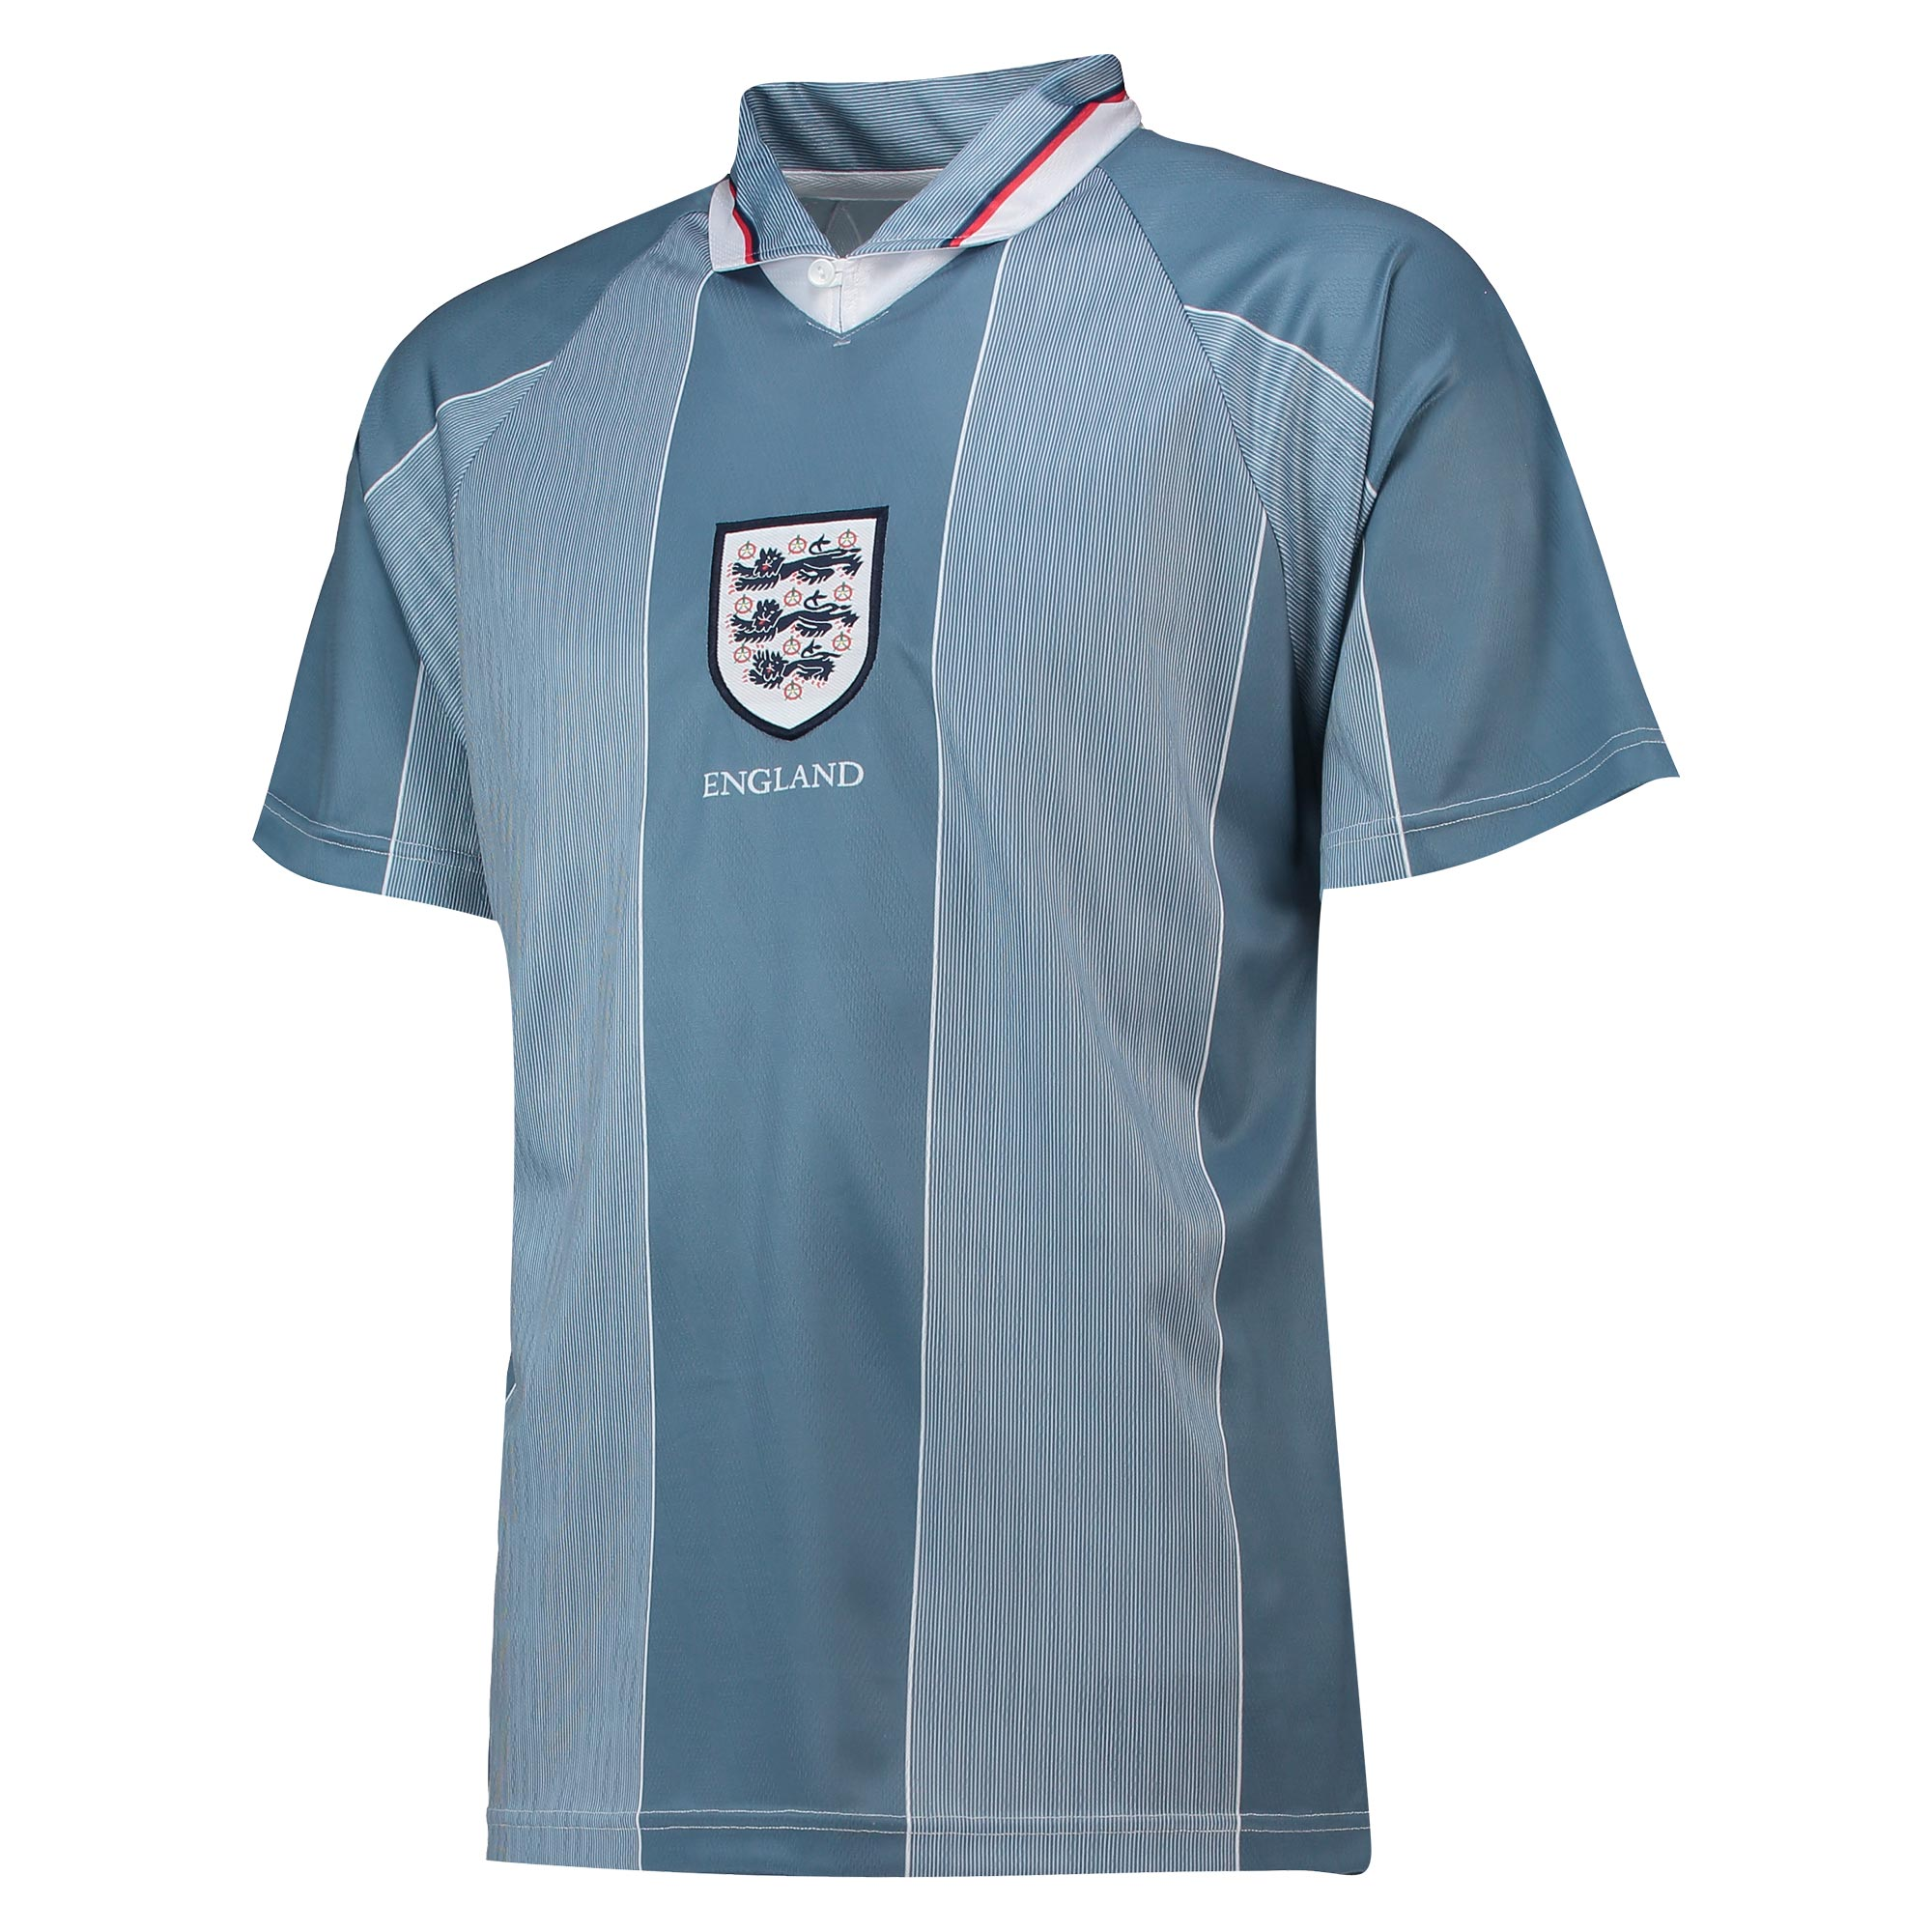 England Retro Away Camiseta